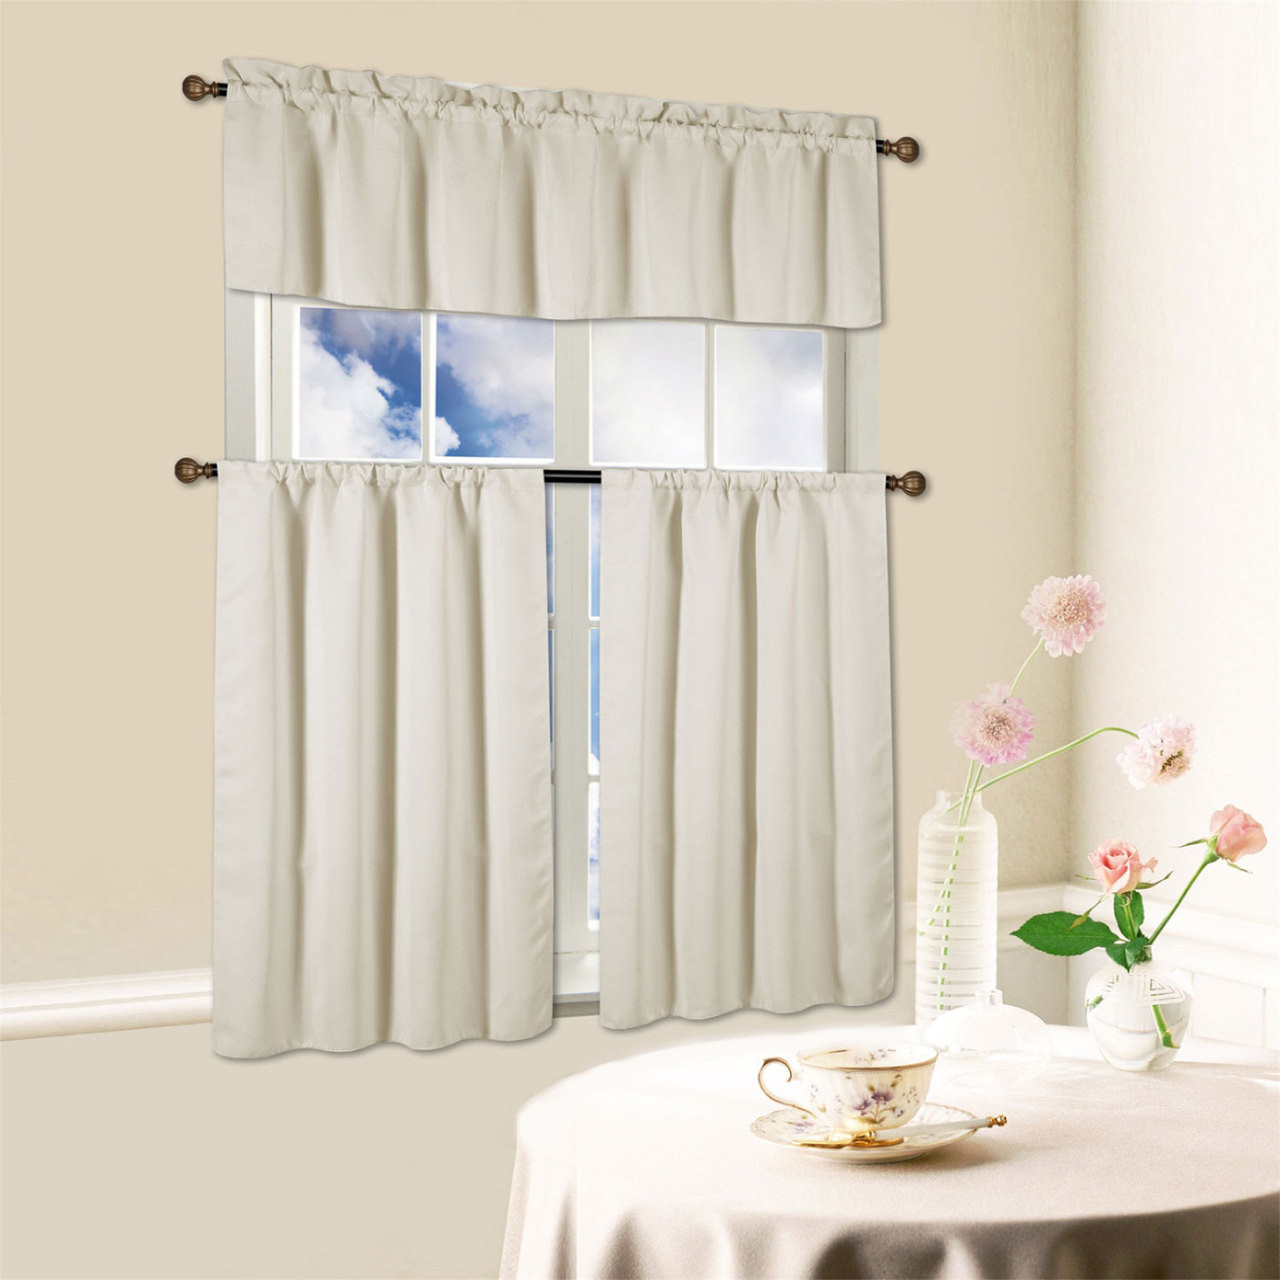 36 Inch Room Darkening Curtains Beth 3 Piece Energy Efficient Blackout Window Kitchen Curtain Set